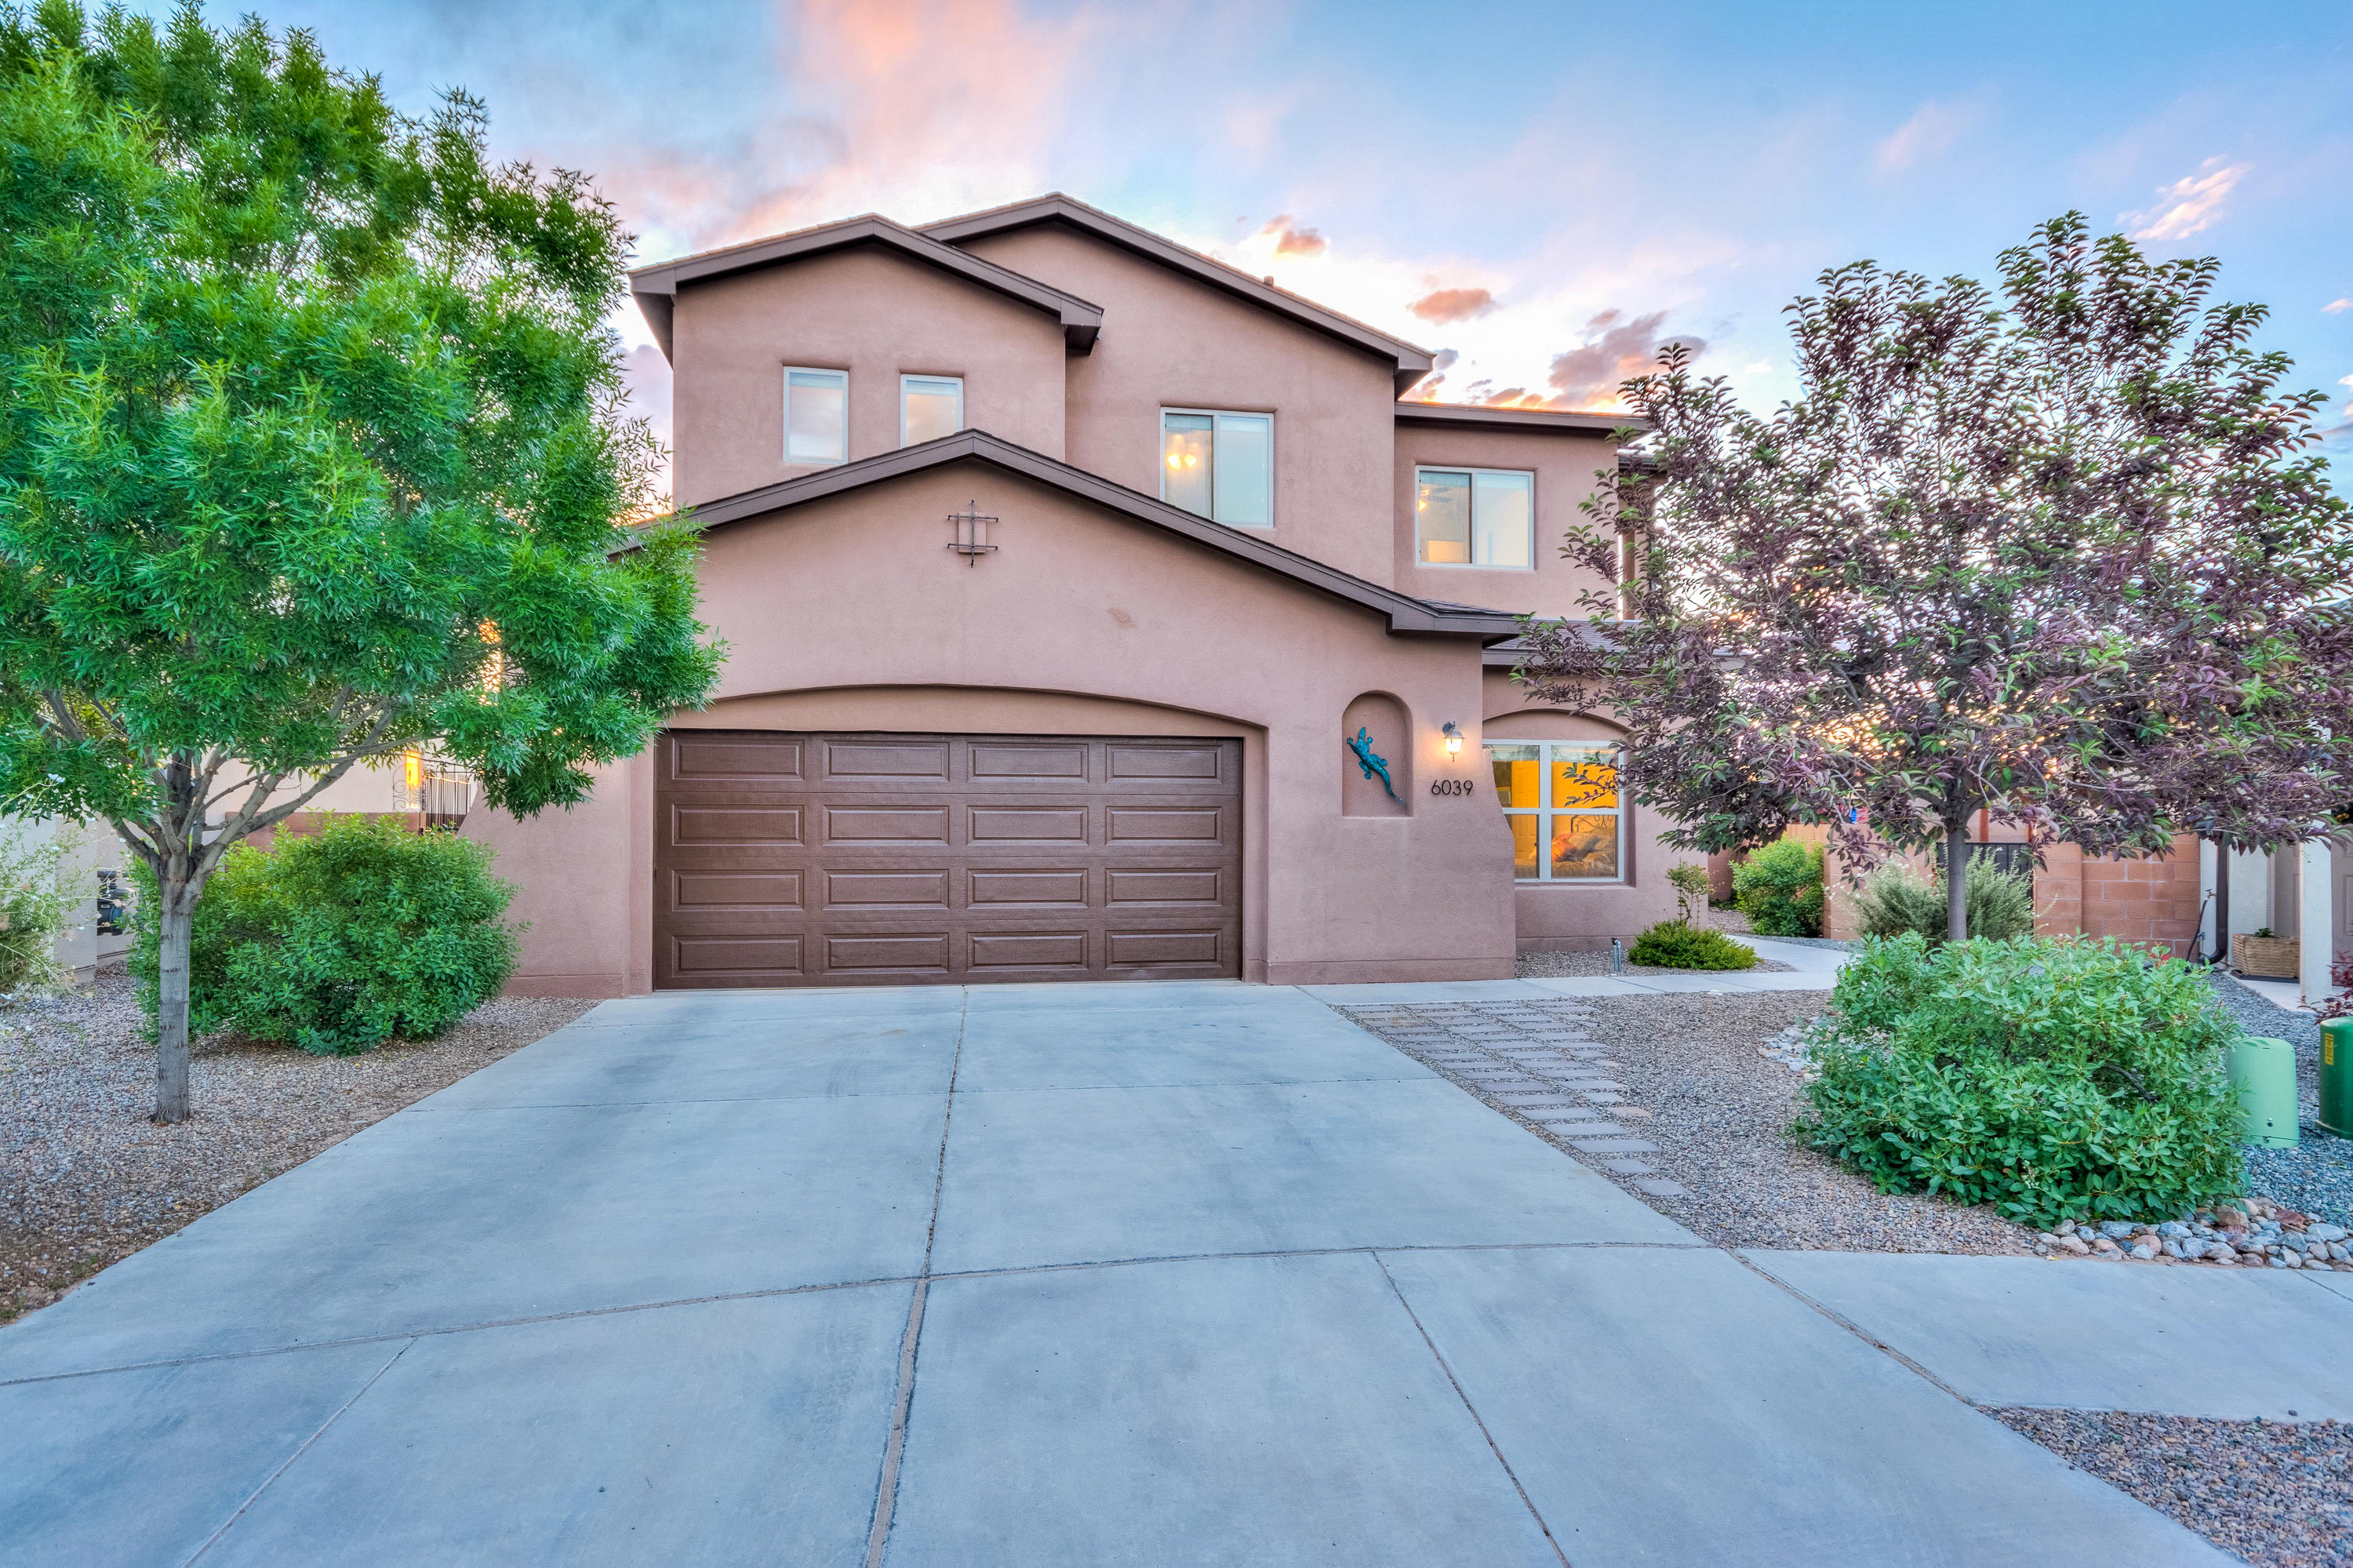 This custom Abrazo house is one of a kind, on a huge lot on a cul-de-sac!  This is the only house with this floorplan!  With 5 bedrooms PLUS an office, PLUS a game/flex room, there are many options!  4 full bathrooms!  The kitchen has granite countertops and stainless appliances.  Great open floorplan perfect for entertaining.  Extra large garage and plenty of closets throughout for storage.  Wired for surround sound!  The backyard is a great size, with fruit trees, fish pond, and beautiful flowers and plants.  Lots of potential with the extra space, and dog run built-in if needed.  This house is close to the elementary and middle schools, with Paradise Hills Park and the pool right across Paradise.  No PID tax in this neighborhood!  Such a great home in a fabulous location.